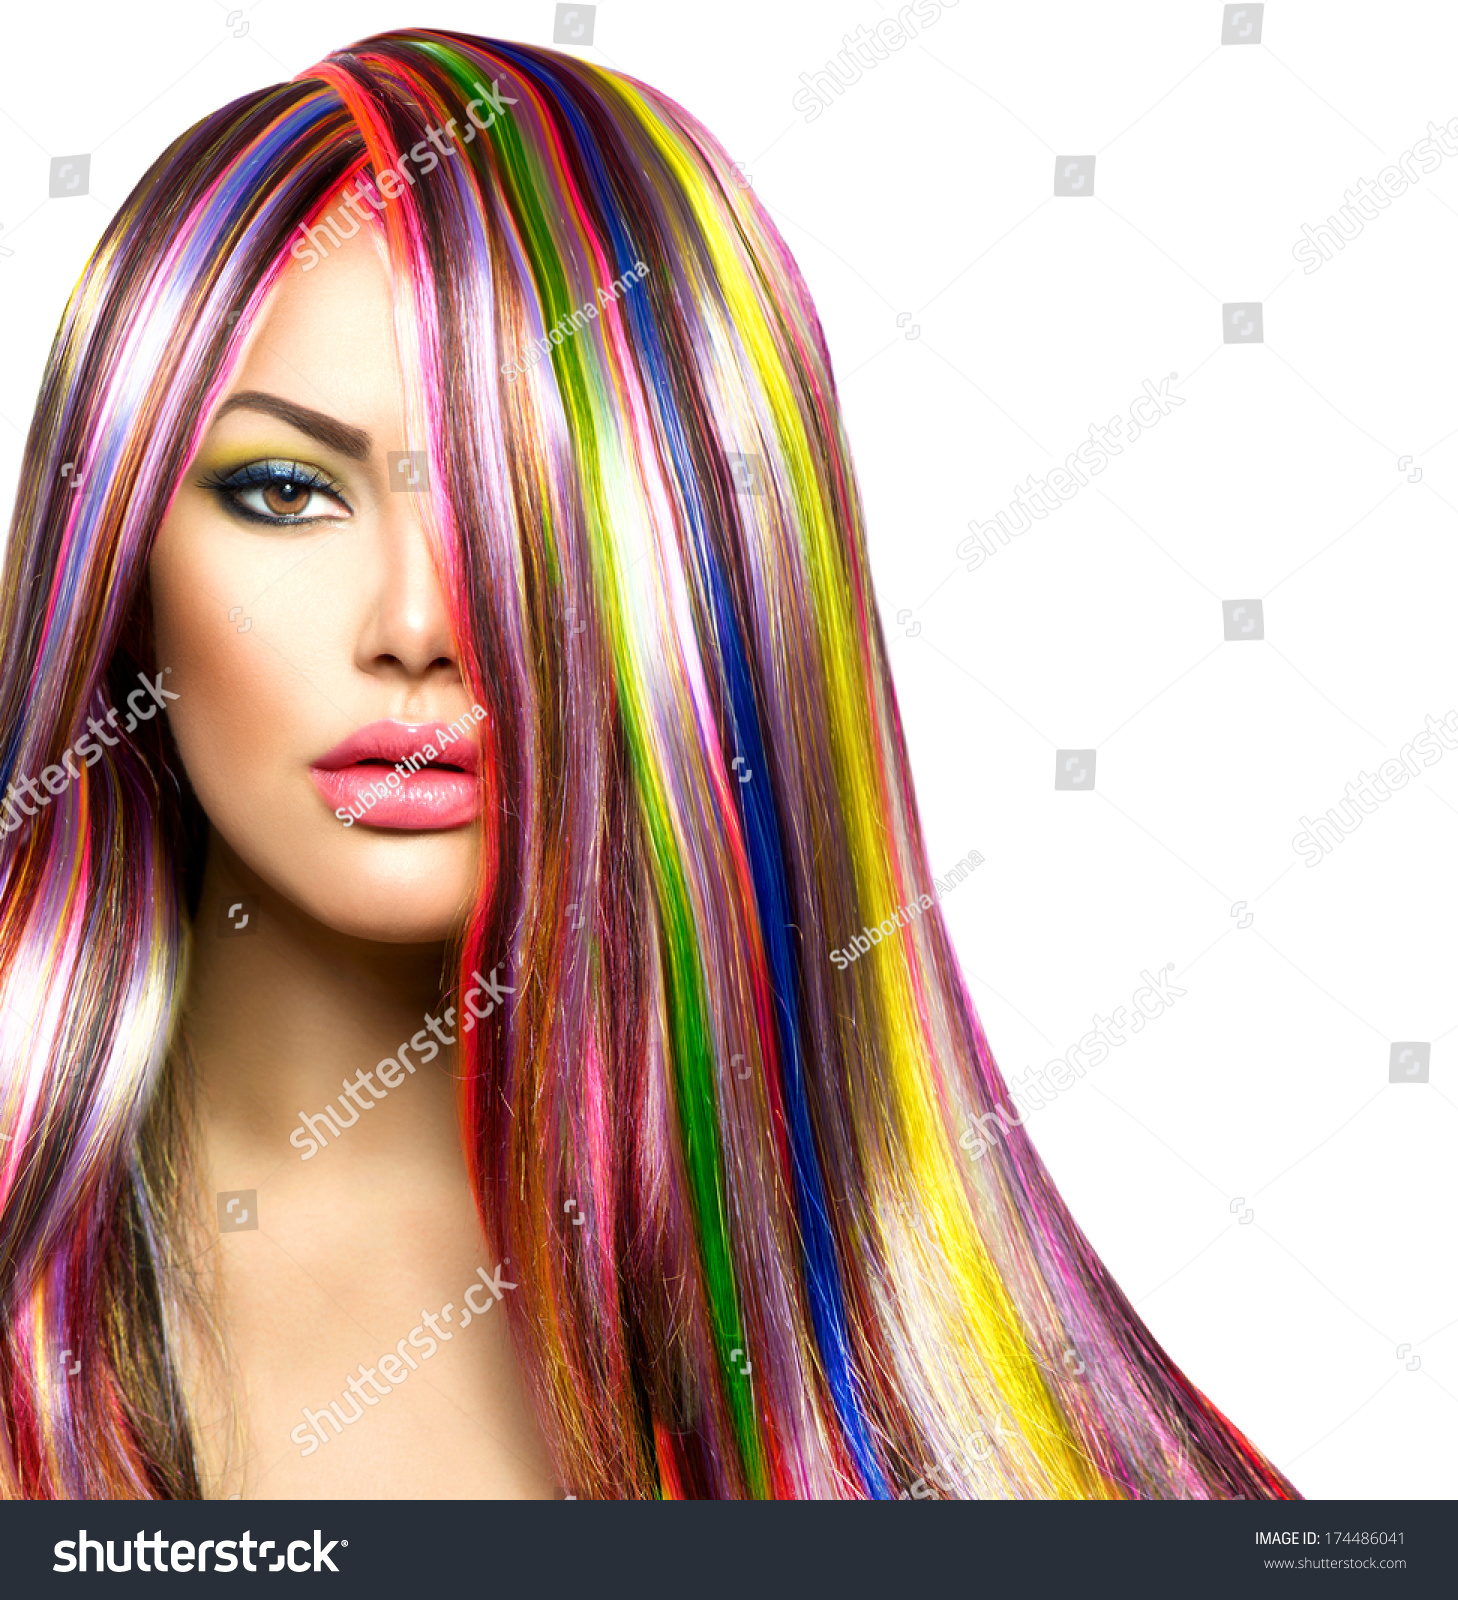 Colorful Hair Makeup Beauty Fashion Model Stock Photo Edit Now